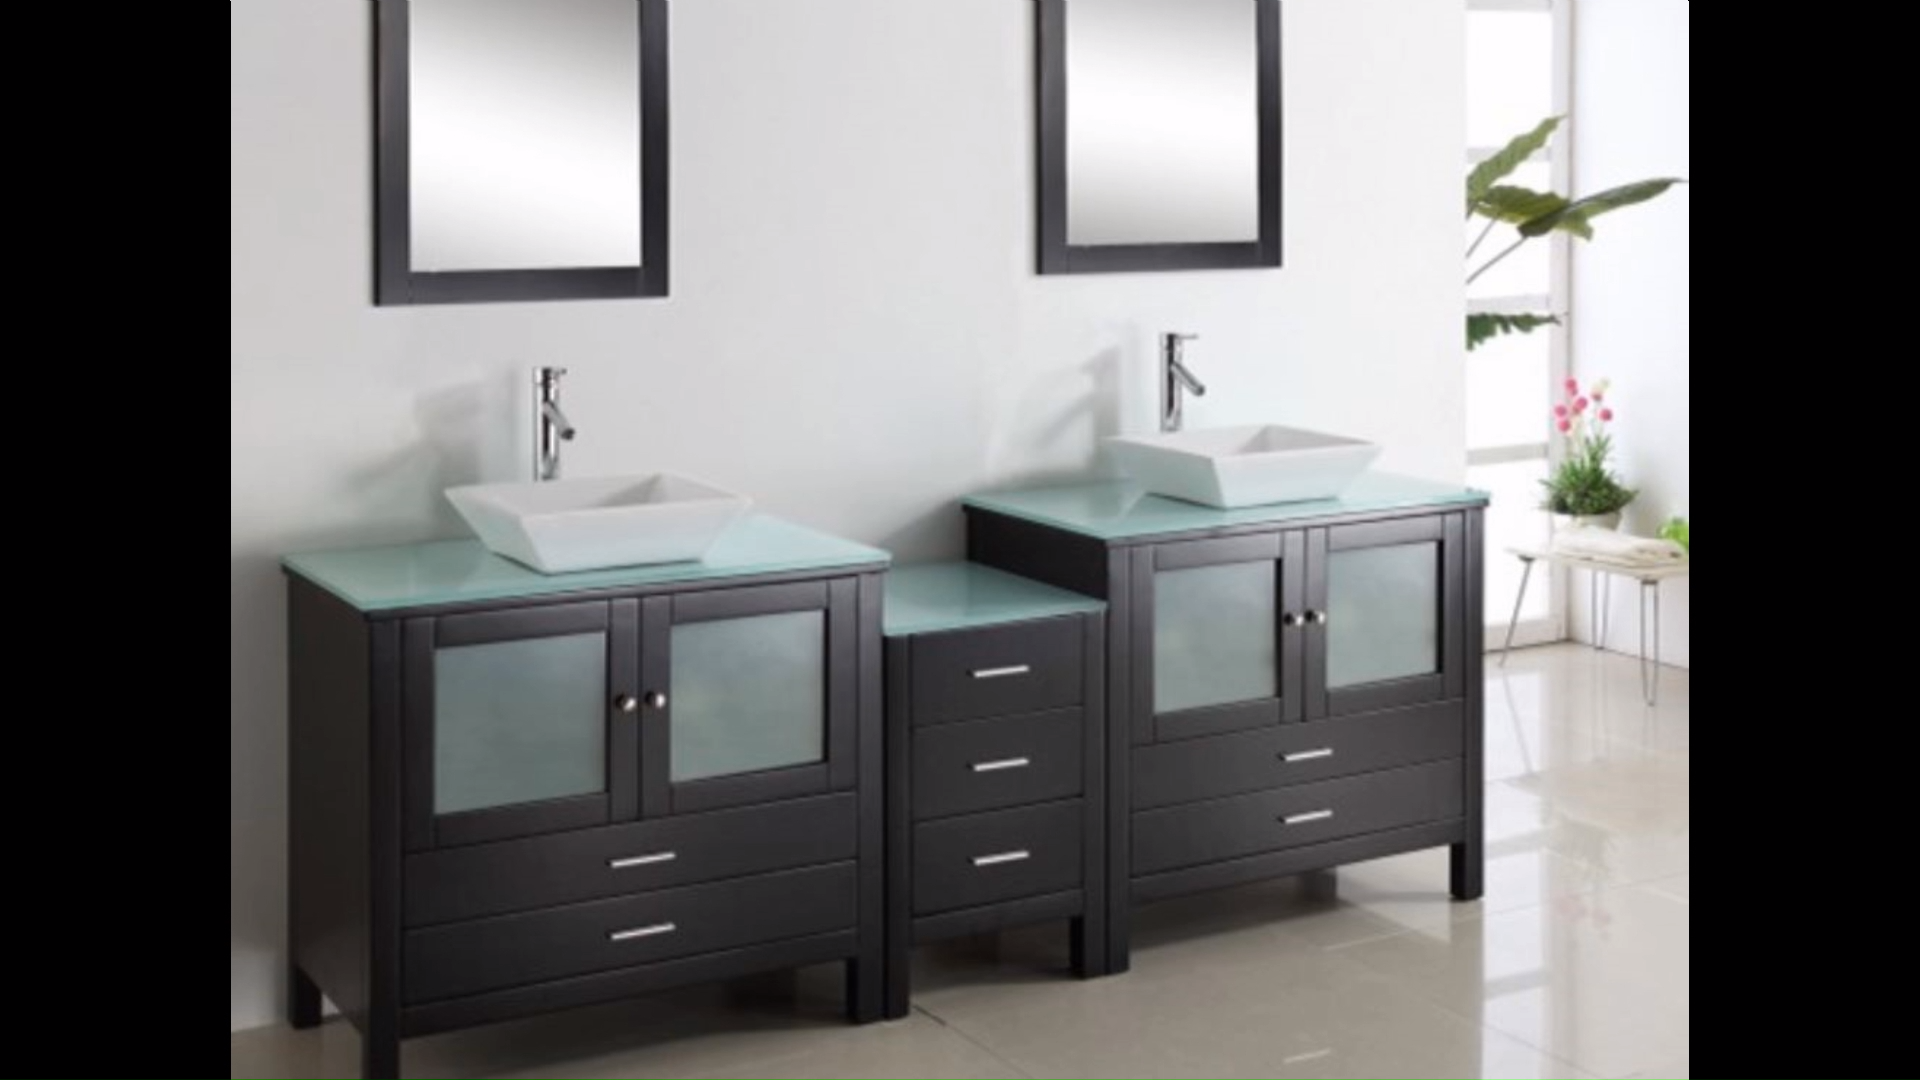 double vanity units for sale in Grey